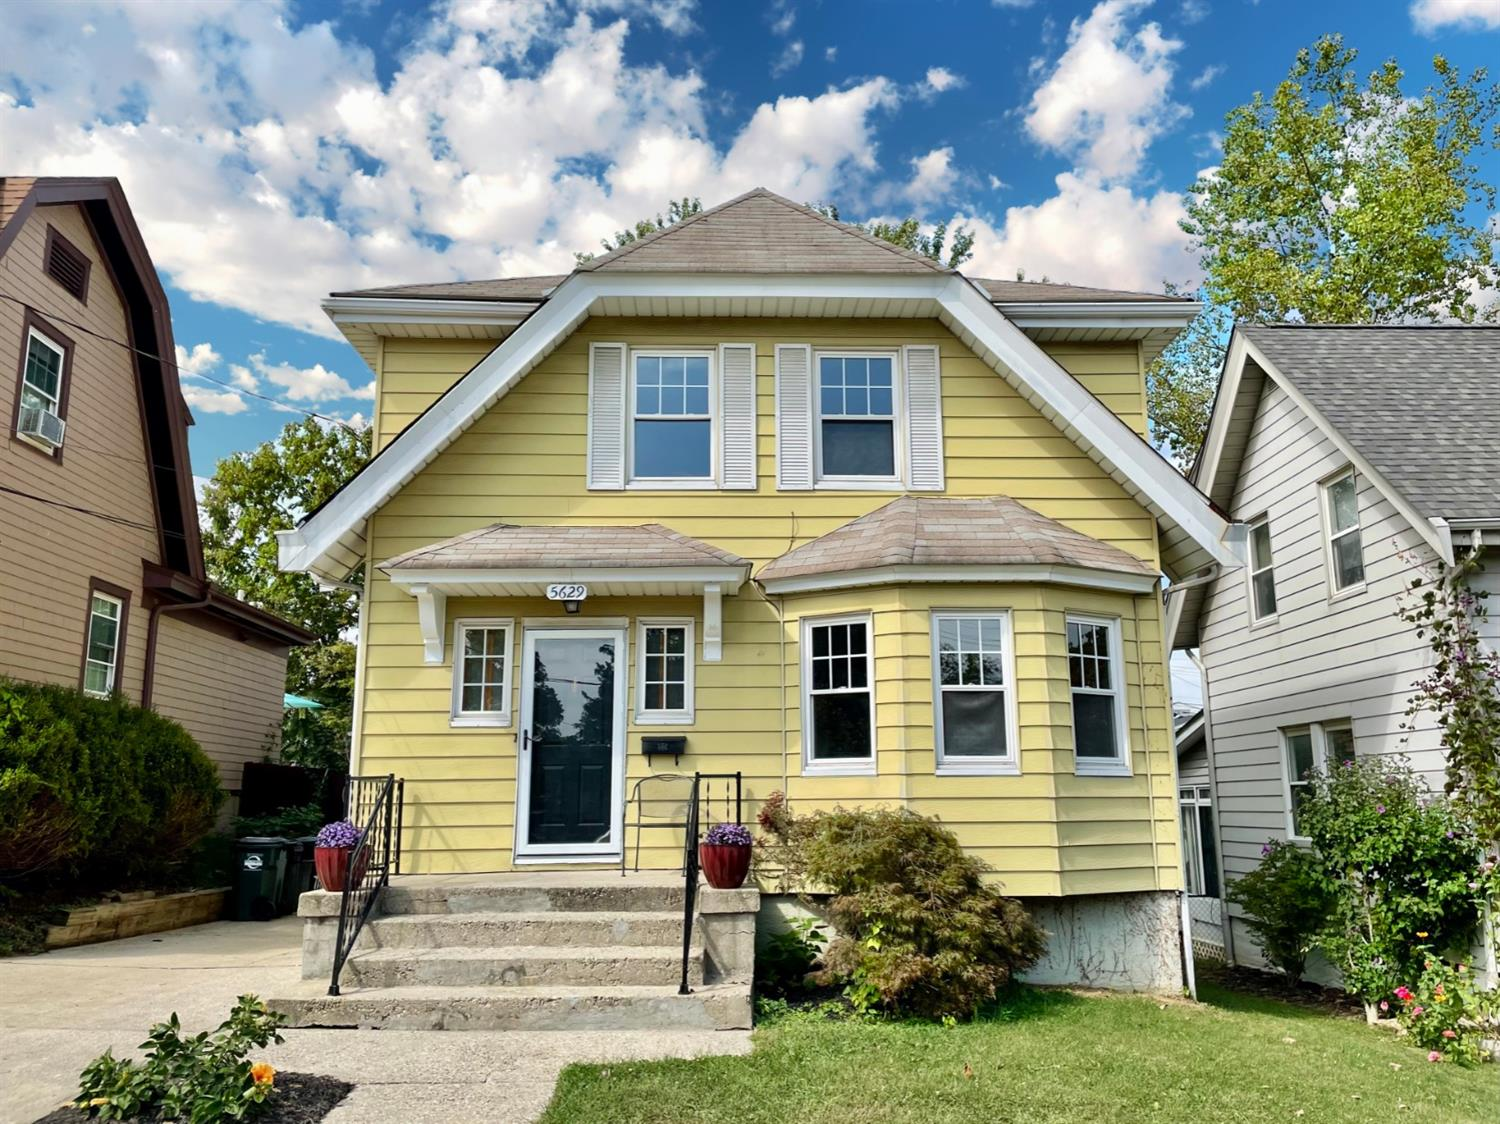 5629 Alvina Avenue, Norwood, Ohio 45212, 2 Bedrooms Bedrooms, 6 Rooms Rooms,1 BathroomBathrooms,Single Family Residence,For Sale,Alvina,1716392